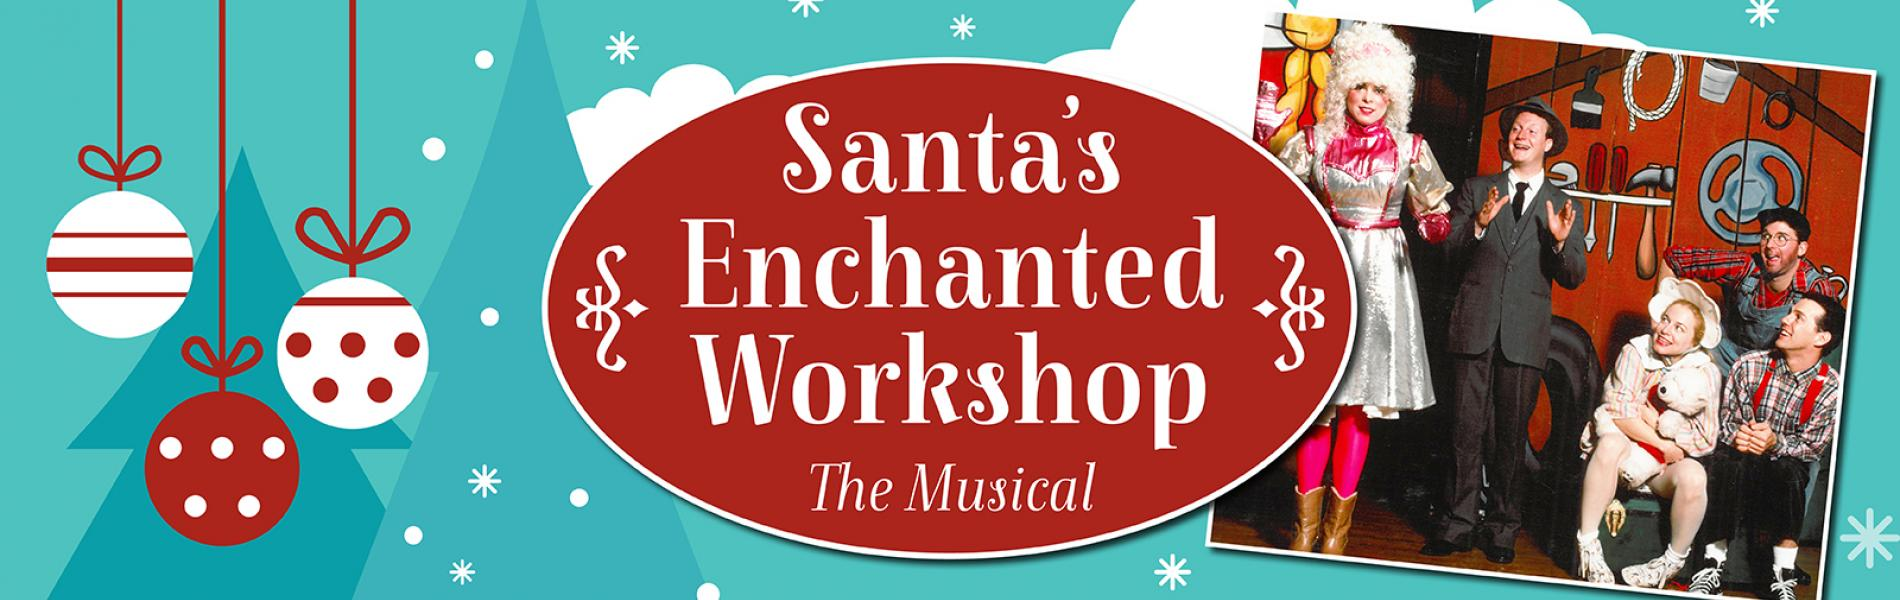 Santa's Enchanted Workshop